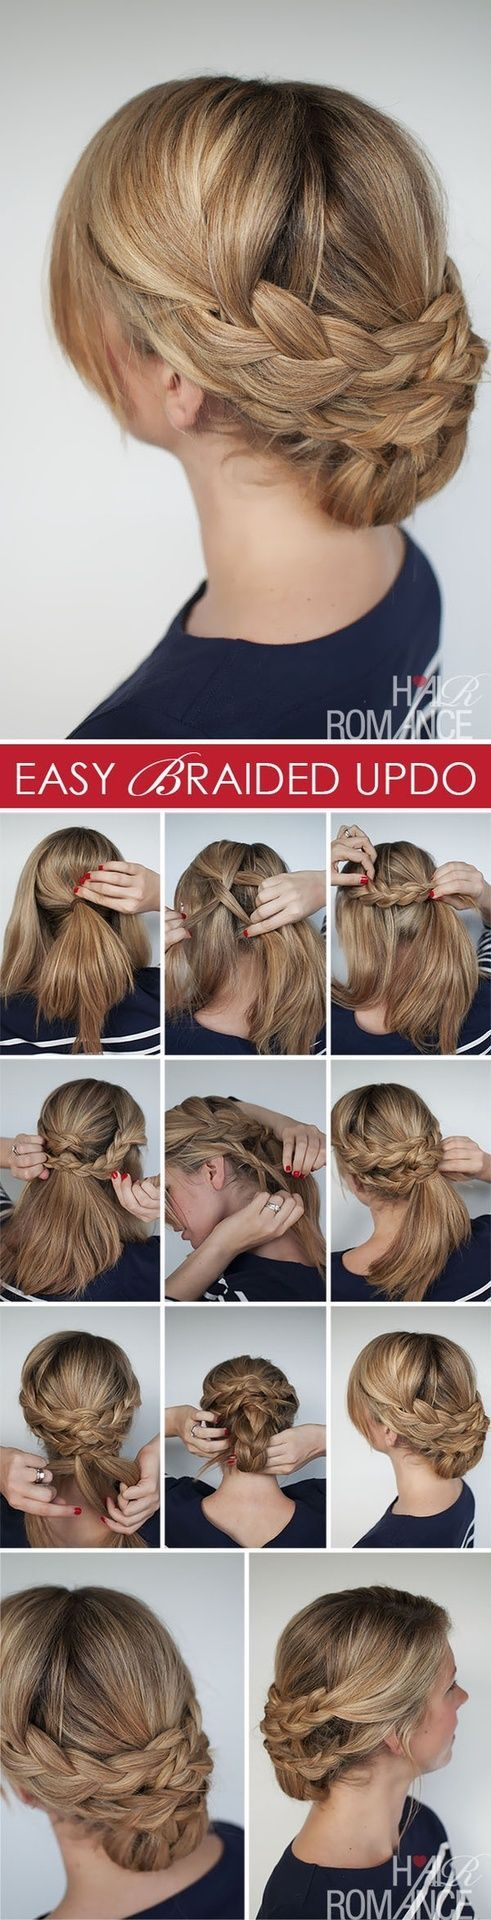 Enjoyable 1000 Ideas About Easy Braided Hairstyles On Pinterest Side Short Hairstyles Gunalazisus